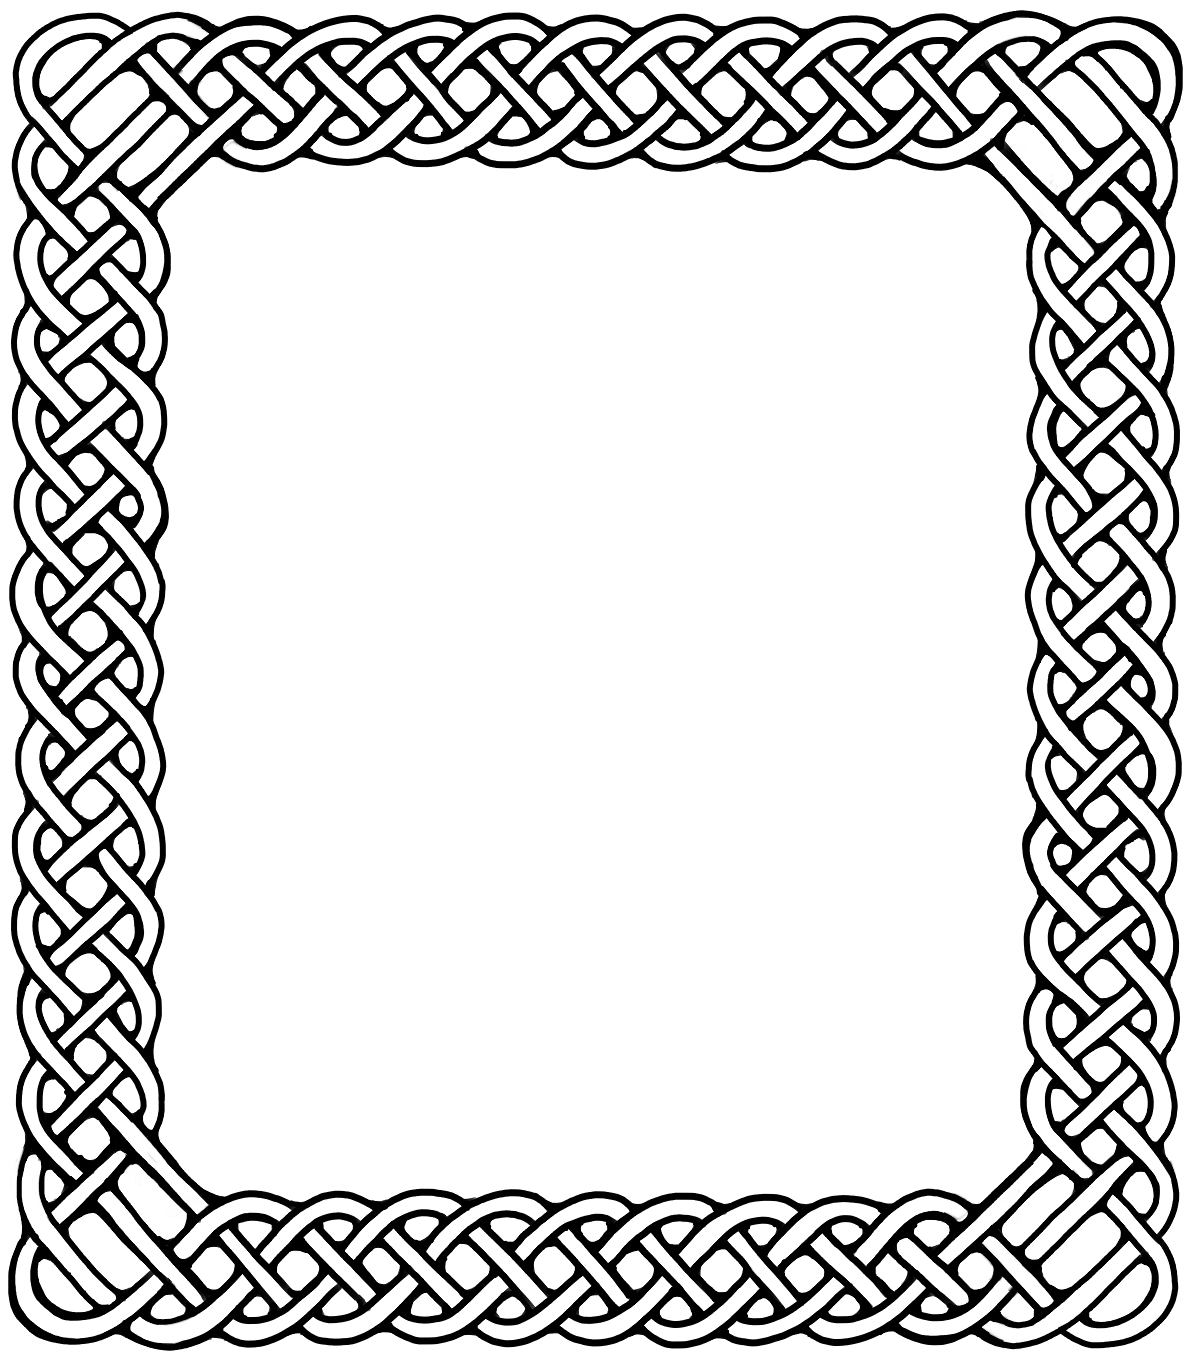 14 cliparts for free. Download Celtic clipart document and use in.